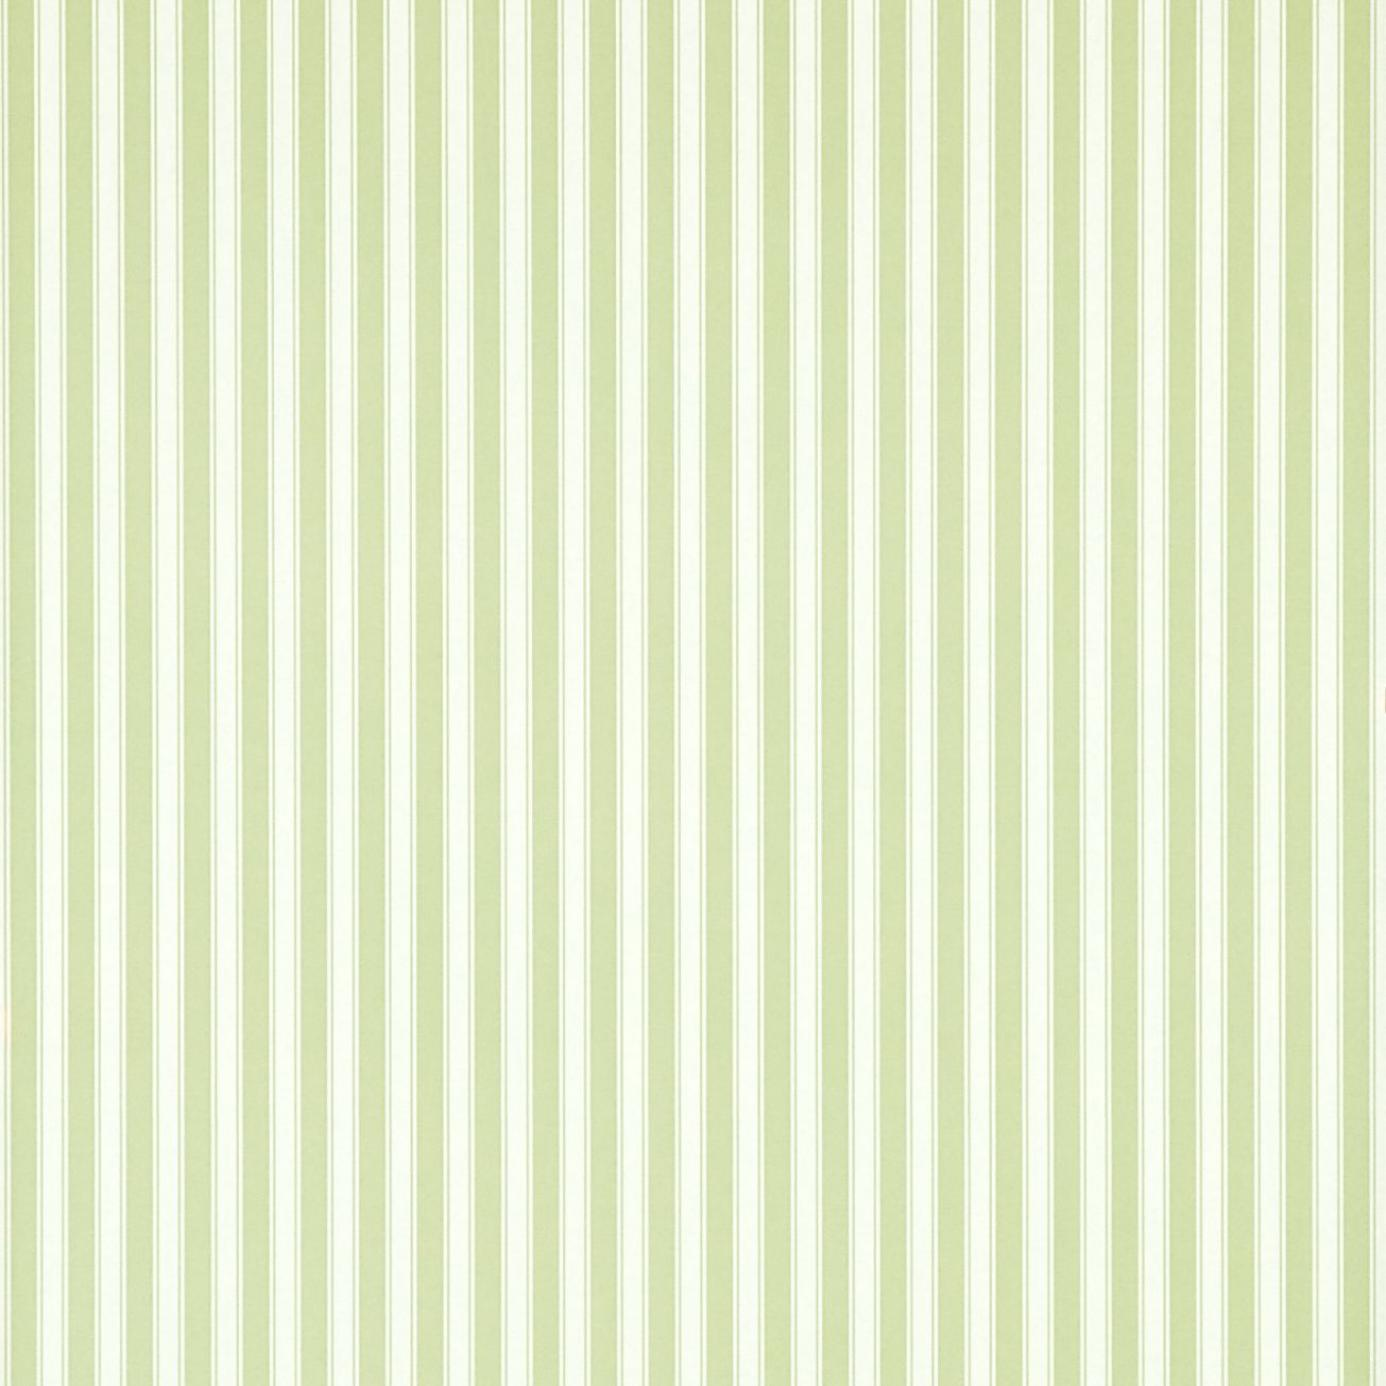 New Tiger Stripe Wallpaper Leaf GreenIvory DCAVTP103